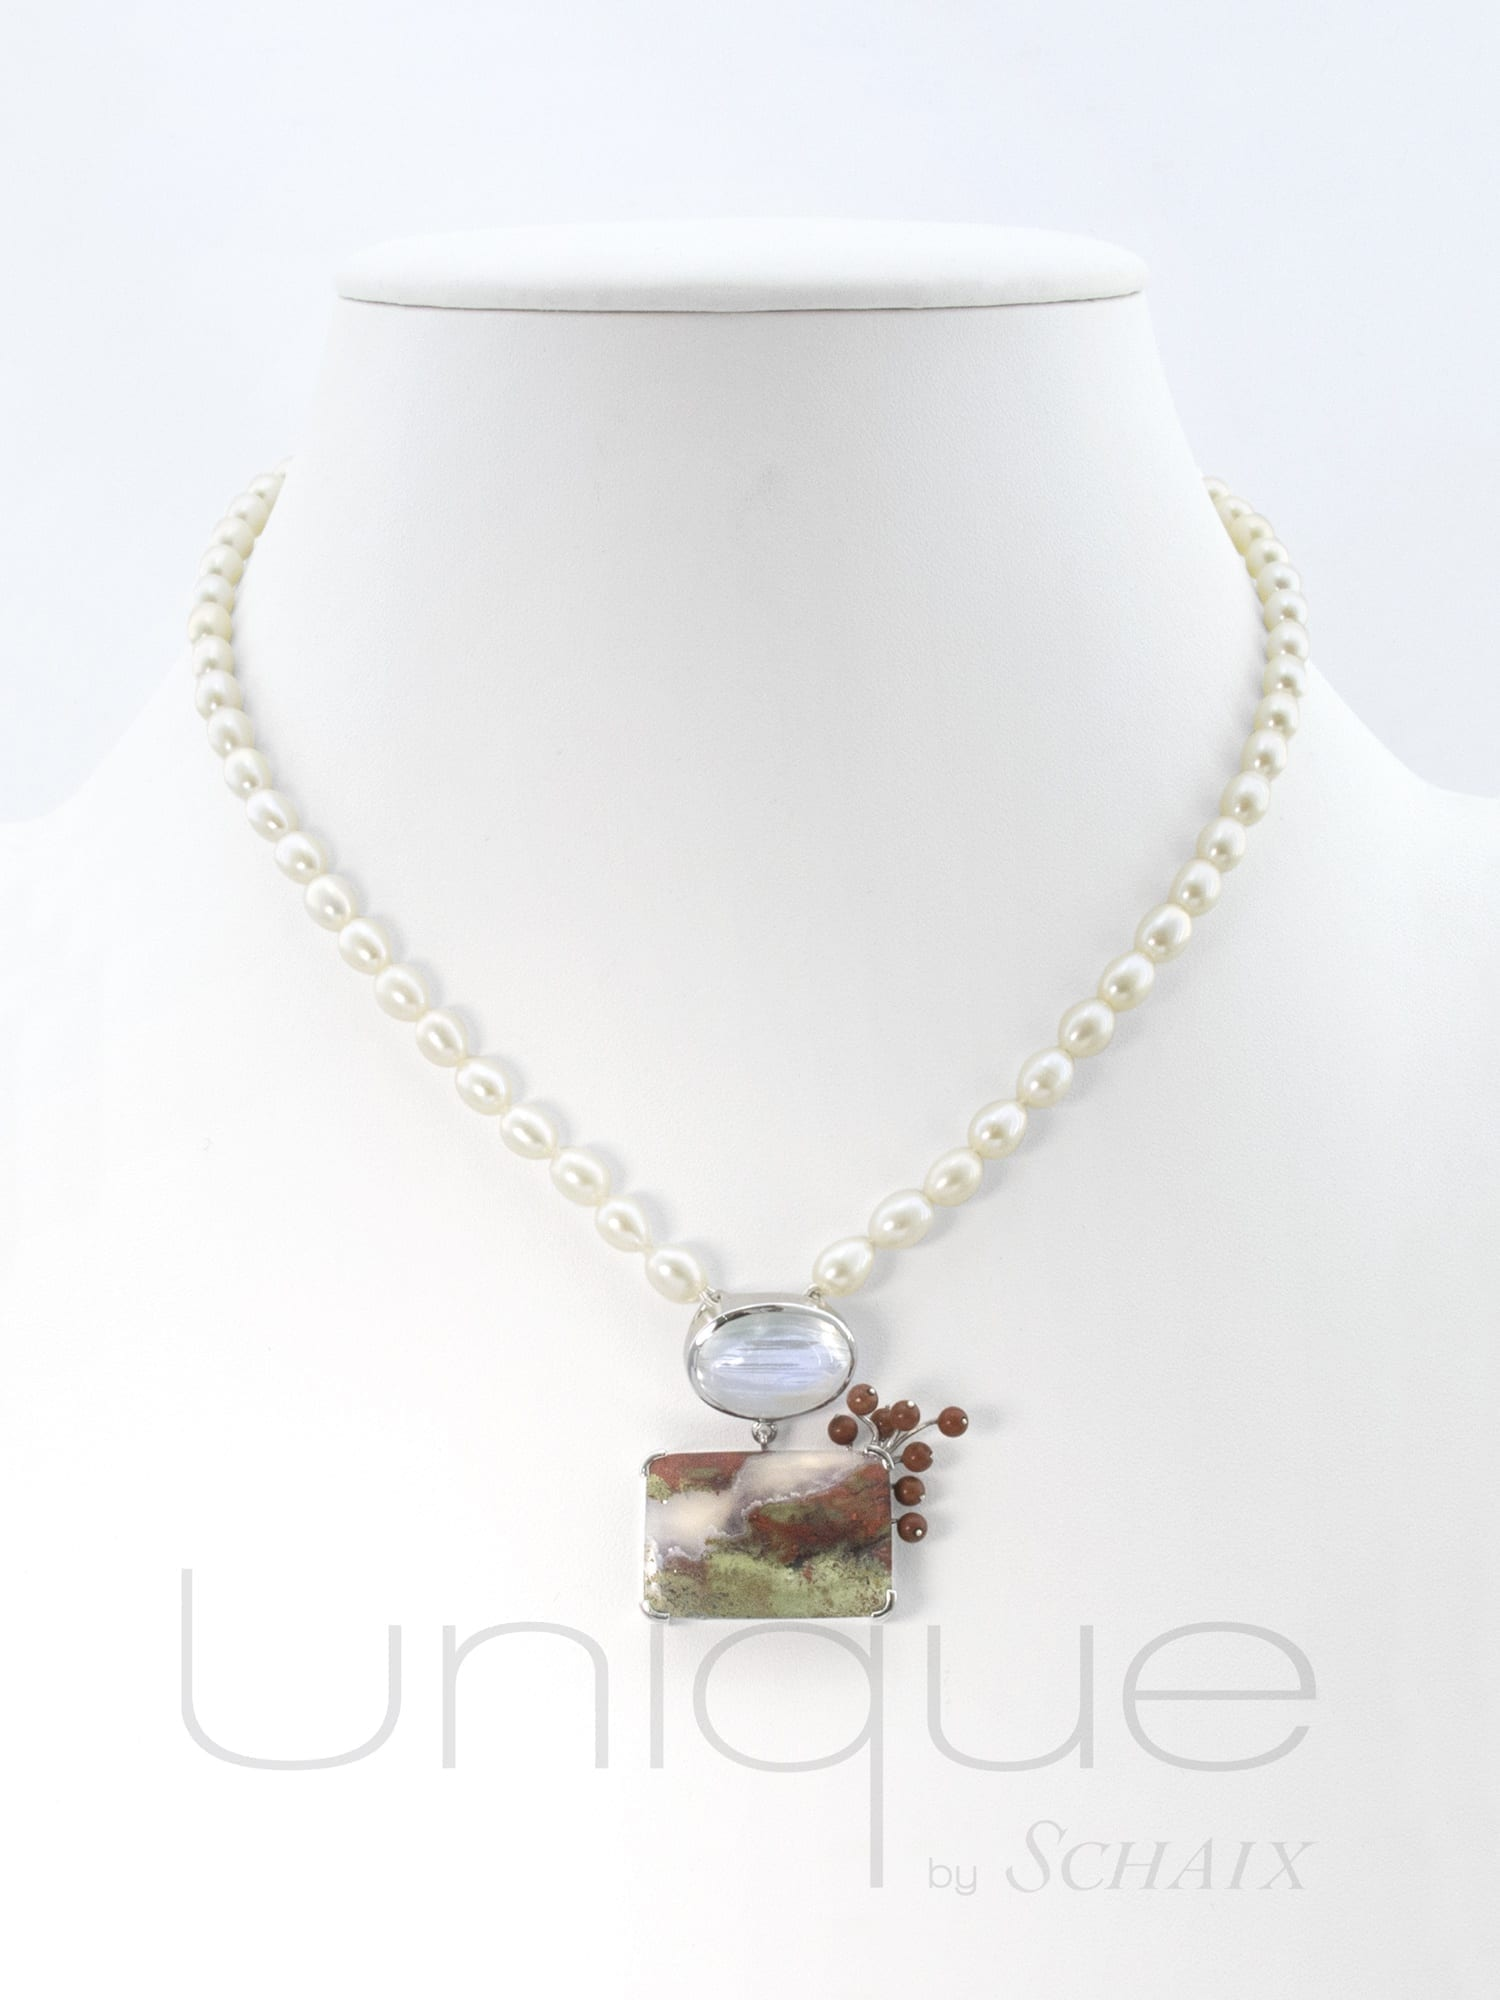 its necklaces jewellery necklace yoko south false akoya strand and with use earrings colour nature pearl sea crop article history london pearls upscale natural s pink greatest miracles three one subsampling of scale the rings